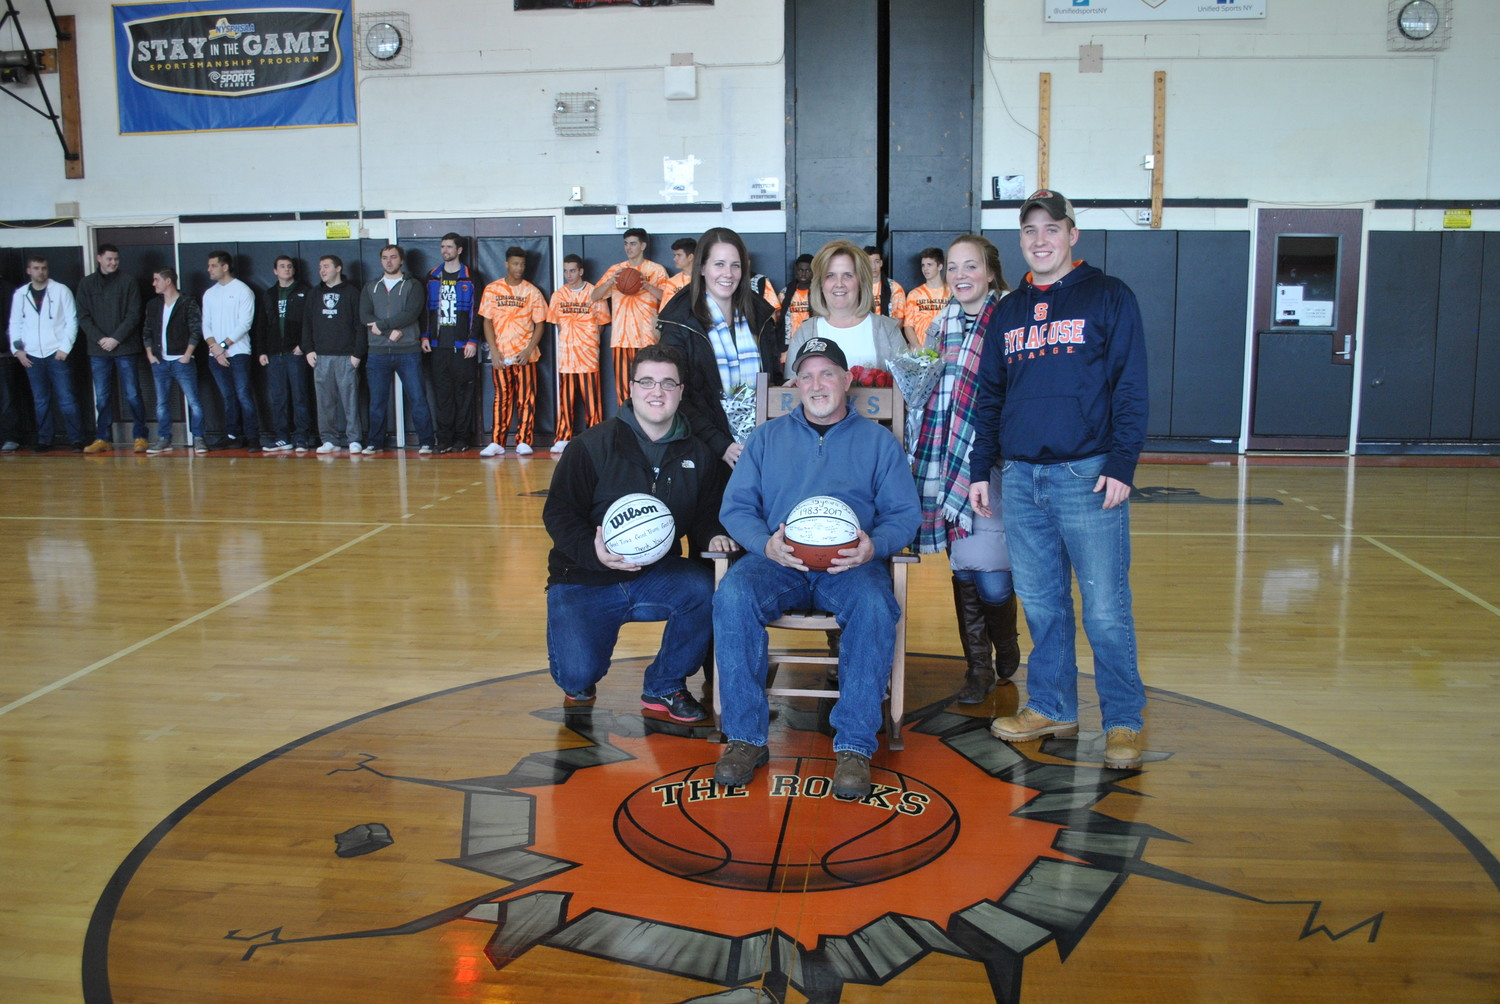 Joe Lores, center, was honored for 35 years as head coach of the East Rockaway boys' basketball team. Above, he was surrounded by his son Joe, left, daughter Katelyn, wife Eileen, daughter Jennifer and son Michael.